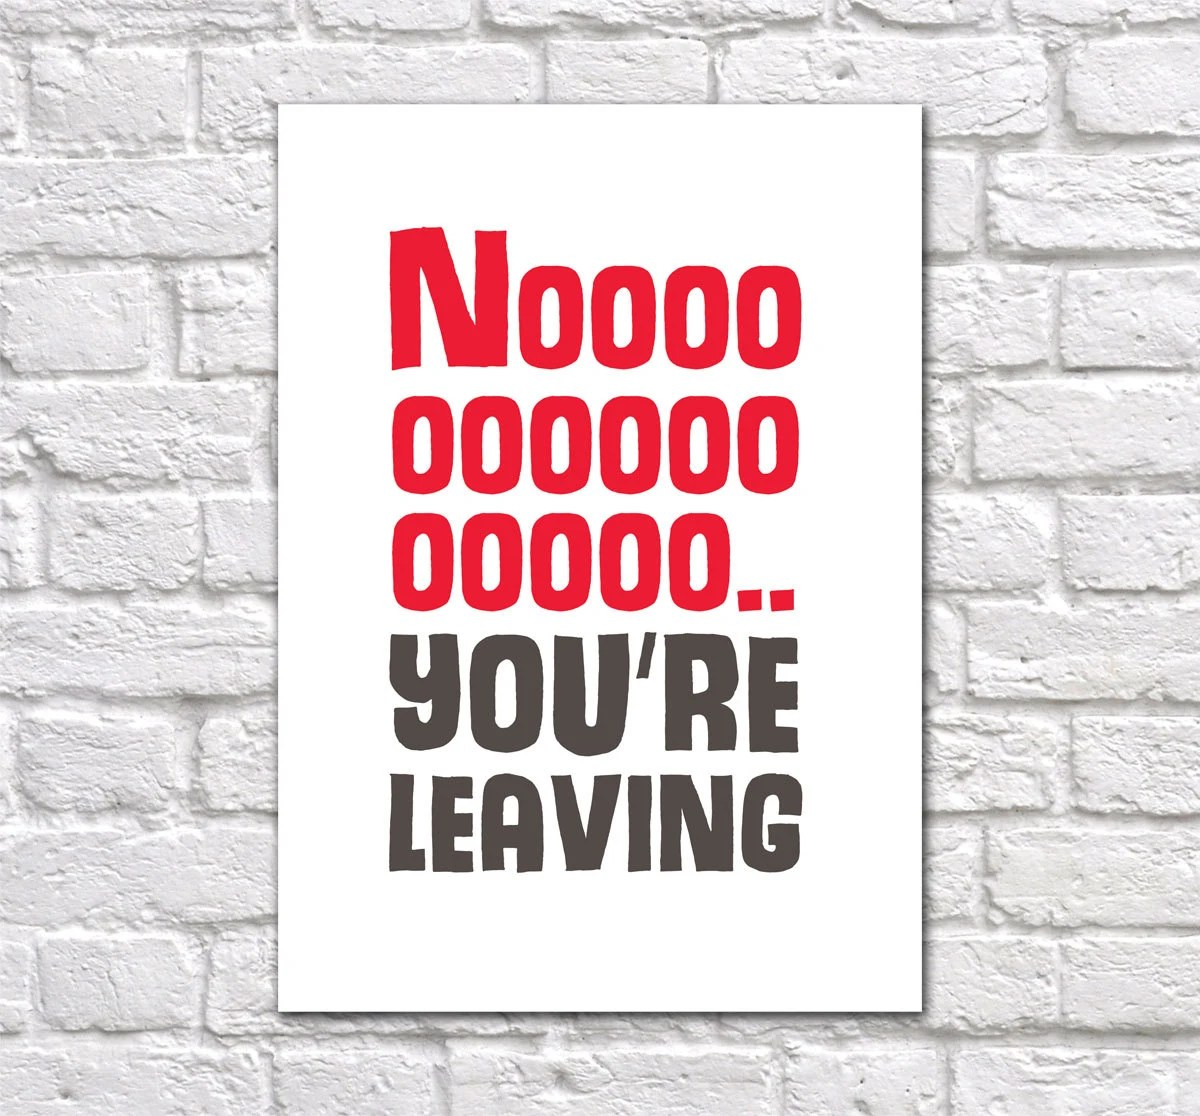 Glancing Leaving Card We Will Miss You Card Miss You Card Il Fullxfull Leavingcard We Will Miss You Card Well Ny We Will Miss You Ny We Will Missyou Ny We Will Miss You Eeoc Investigator Cover Letter inspiration Miss You Funny